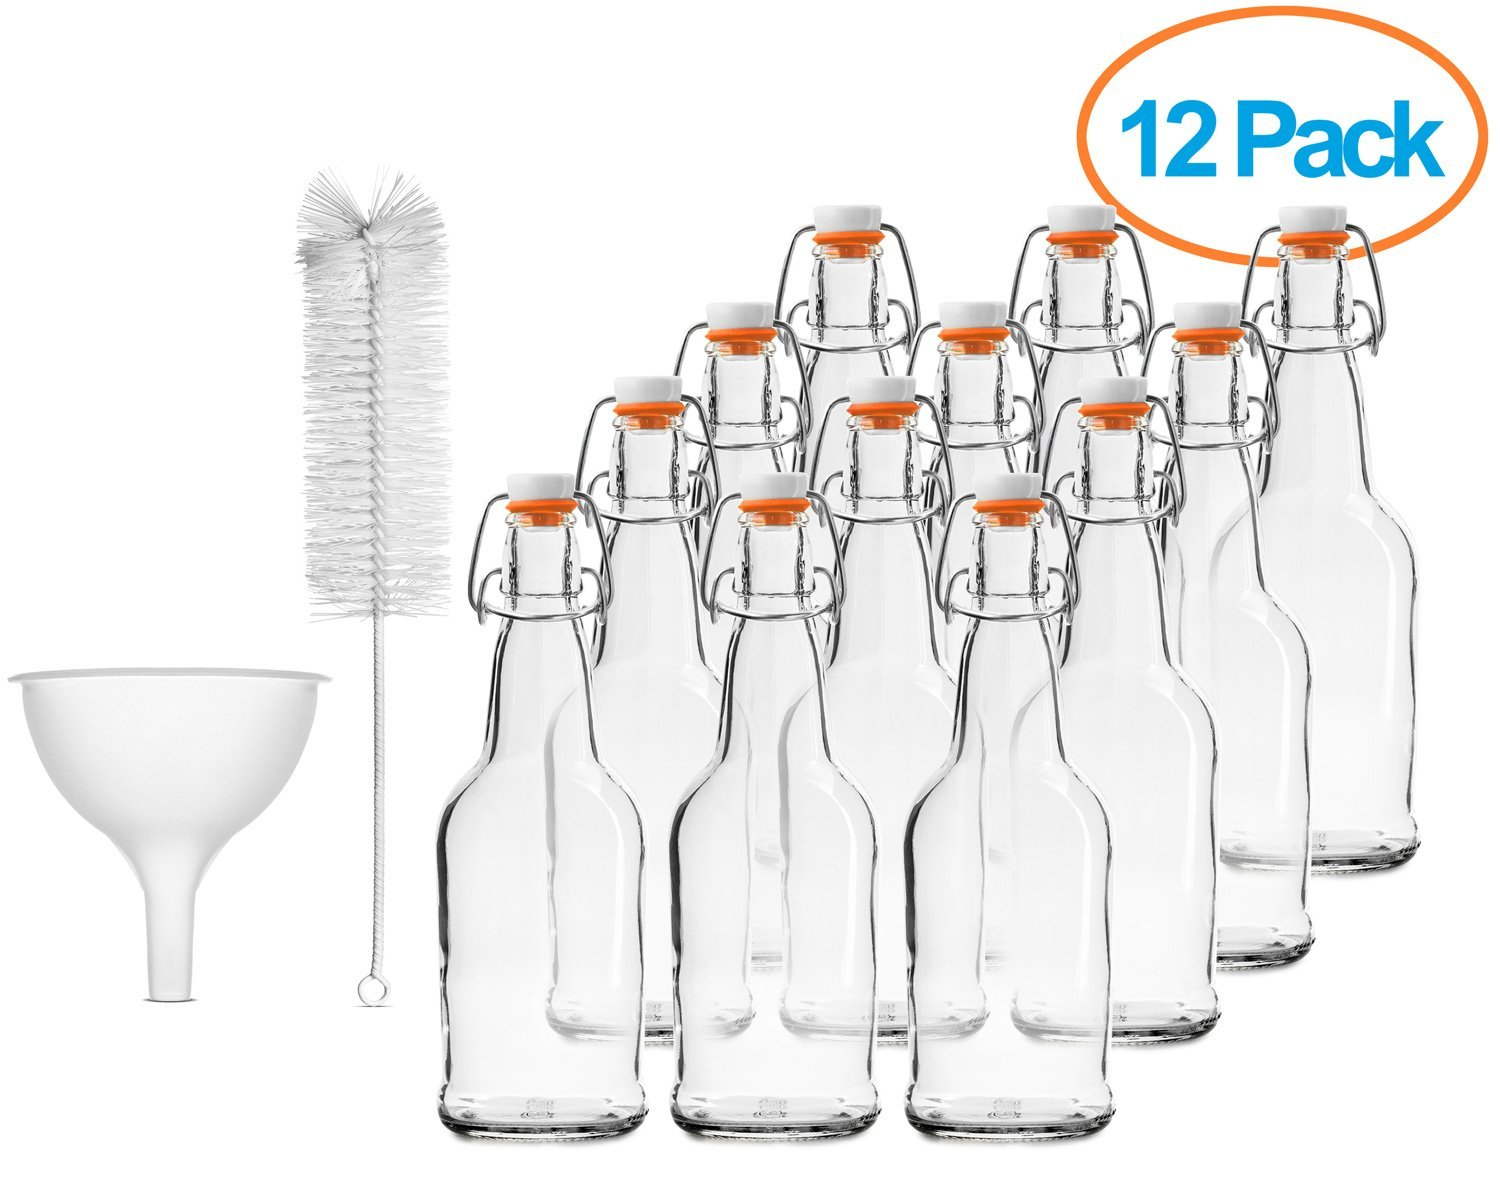 Chef's Star CASE OF 12 - 16 oz. EASY CAP Beer Bottles with Funnel and Cleaning Brush - CLEAR